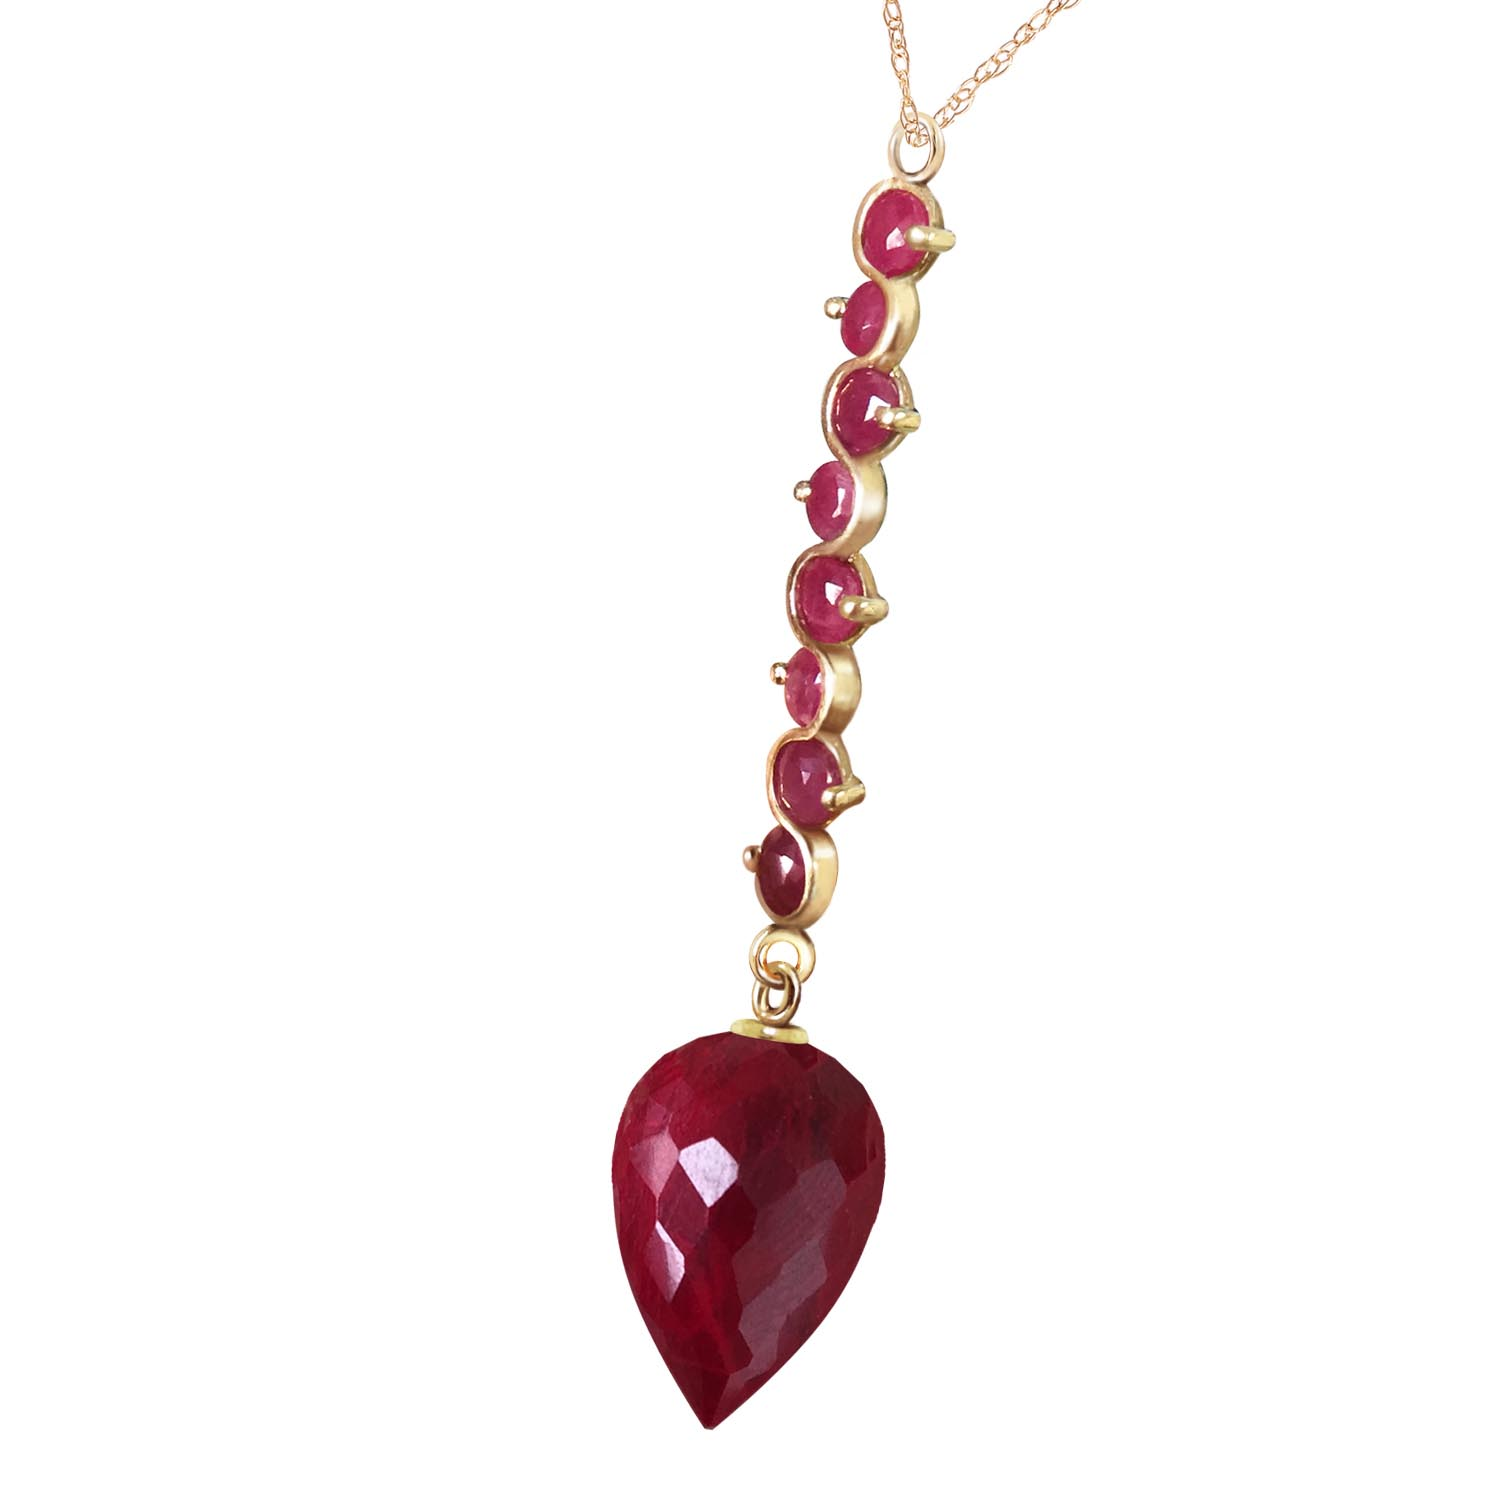 Ruby Briolette Pendant Necklace 14.55ctw in 9ct Gold